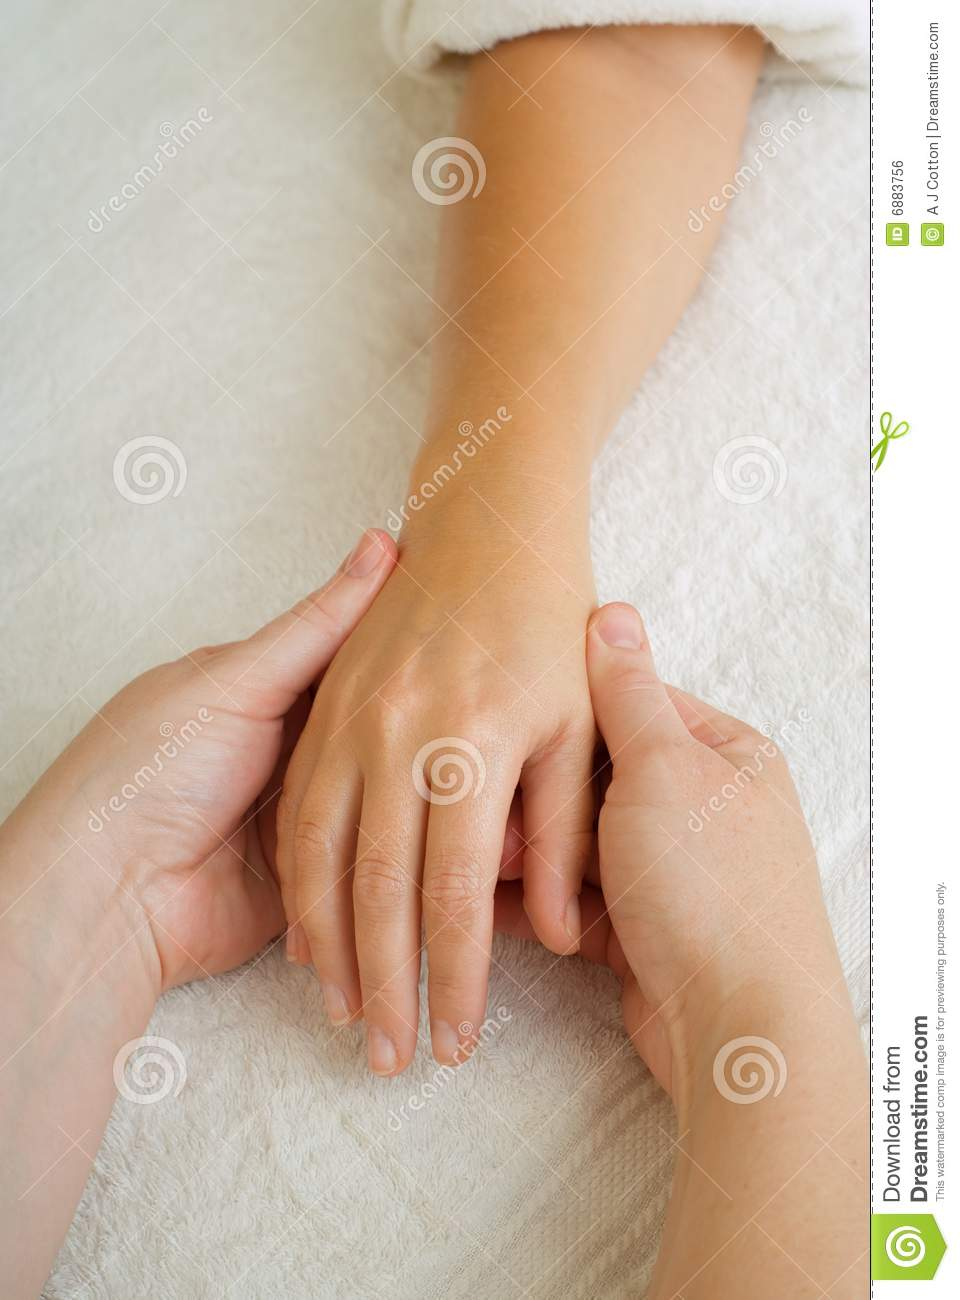 Beauty Therapy Manicure Massage Royalty Free Stock Image - Image ...